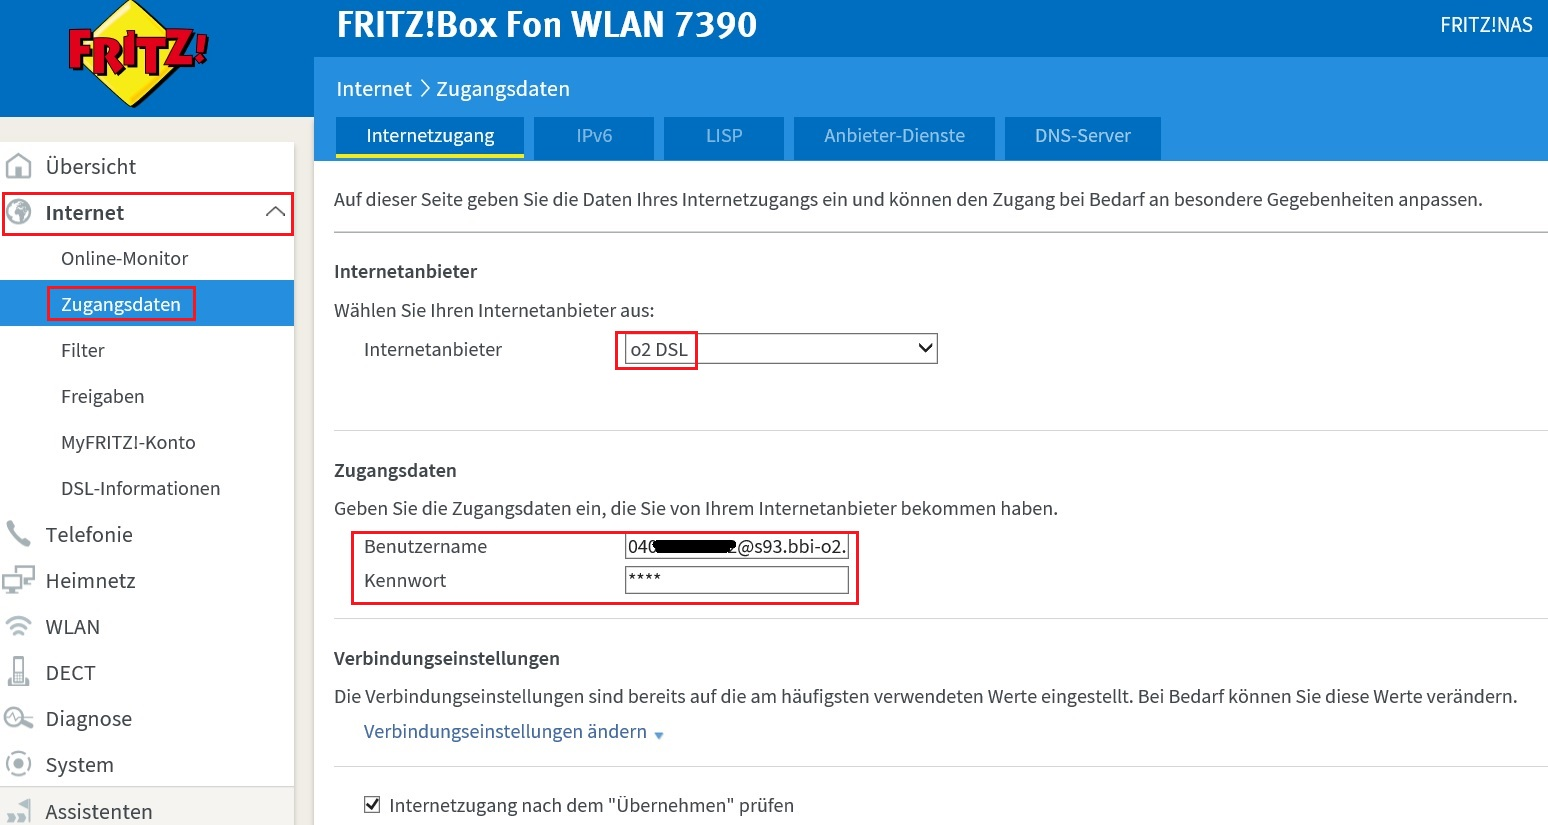 Einrichten O2 Homebox 6641 O2 Dsl Und Fritzbox 7390 Joergs It Tech Blog